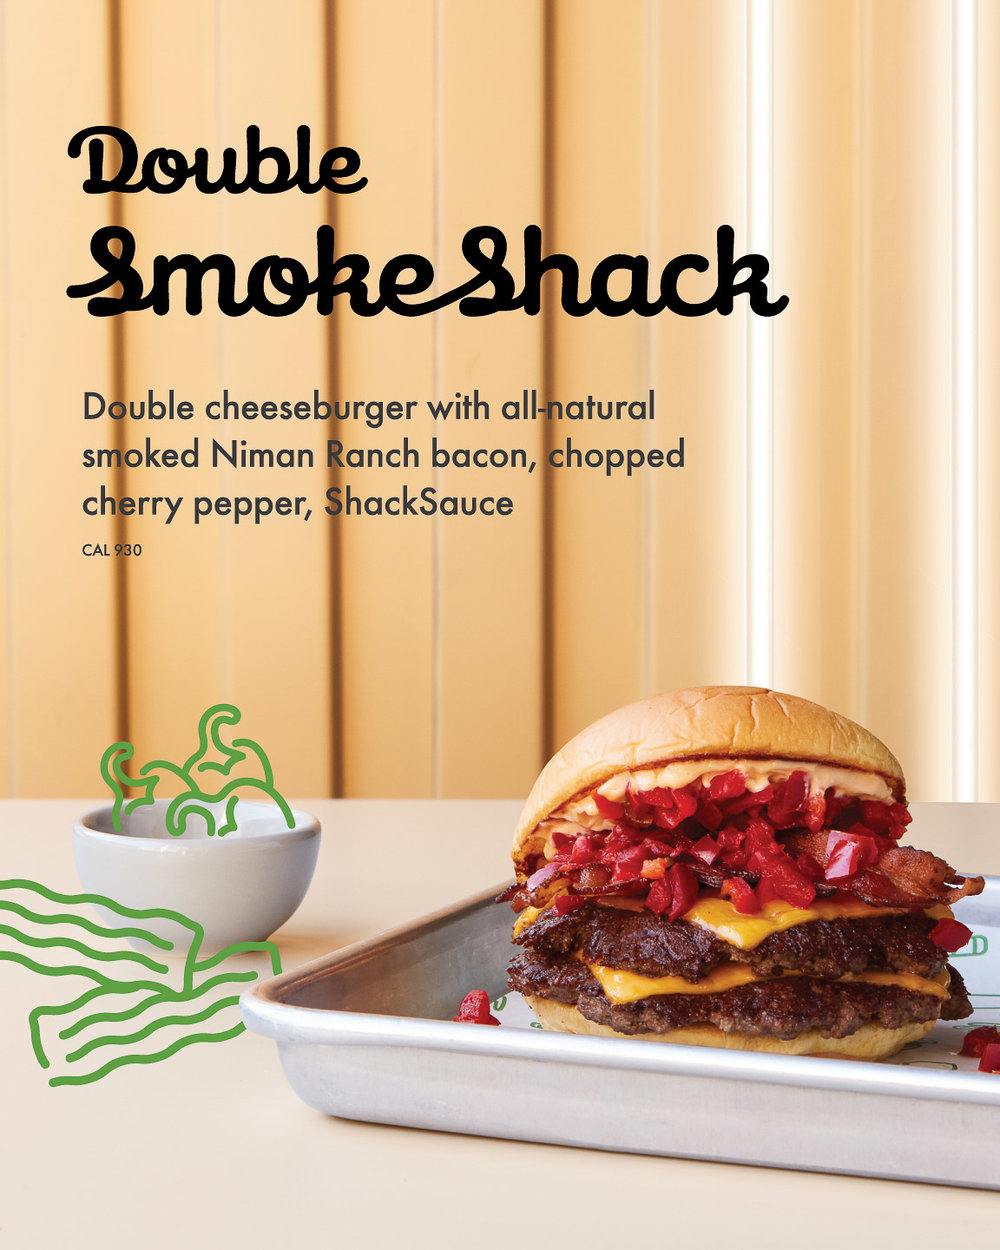 shake-shack-double-smokeshack-christine-han-photography-100.jpg